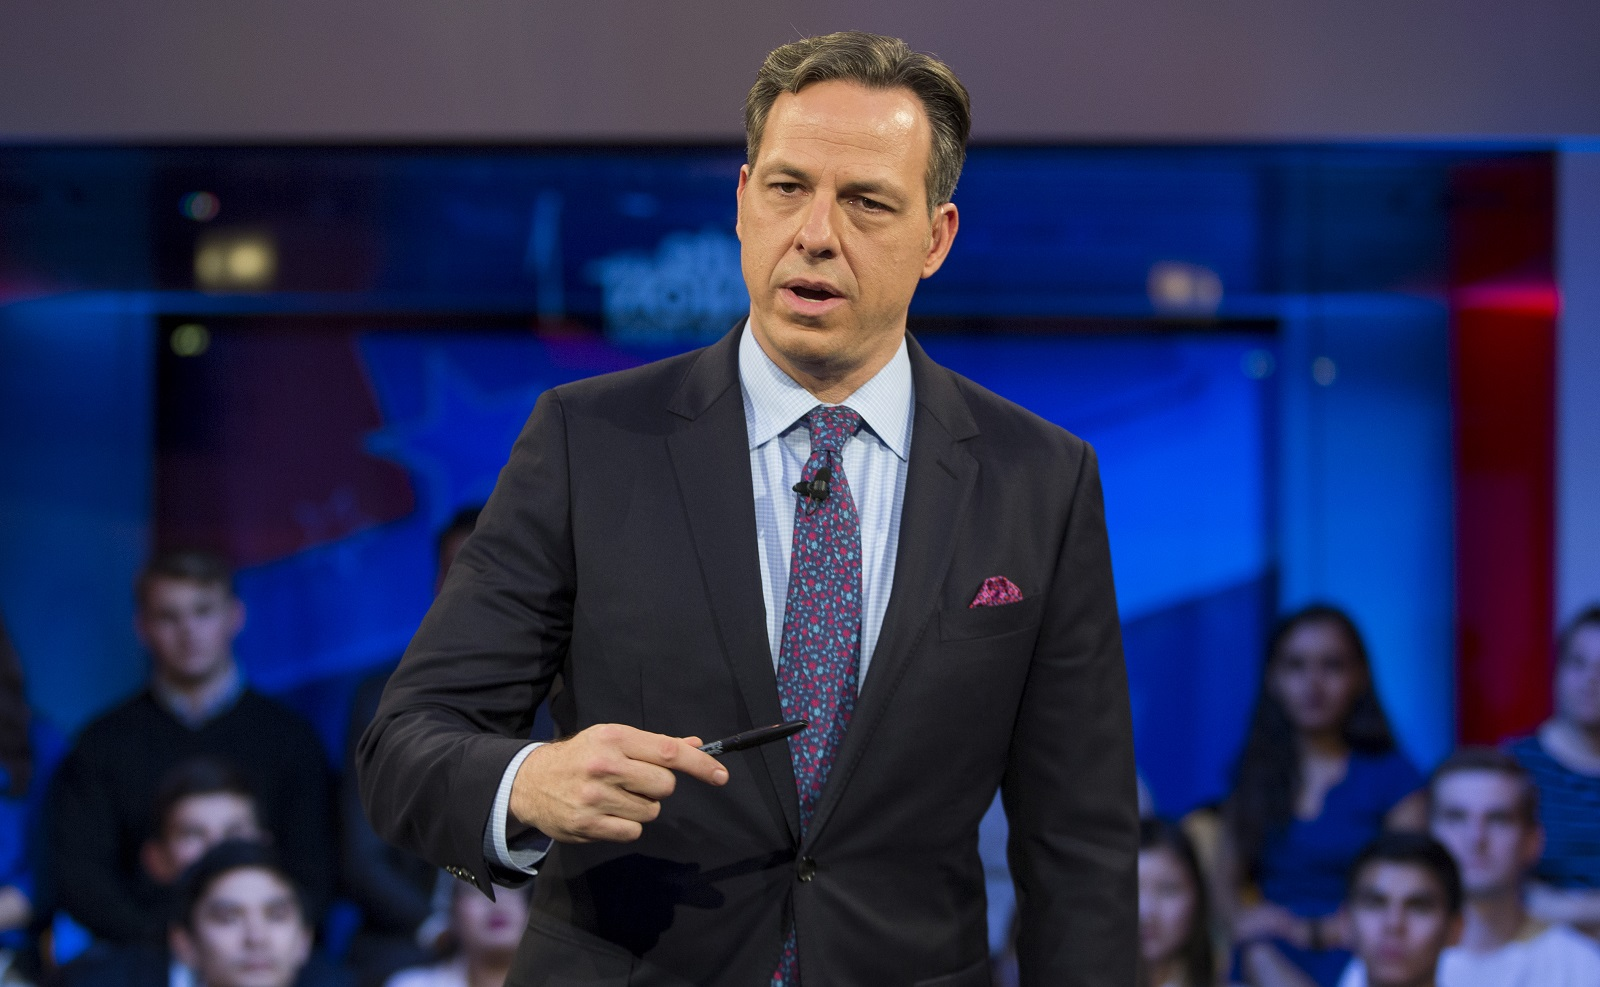 Jeff Simon suggests a book that unfolds CNN's coverage of the 2016 presidential election. Pictured is CNN anchor Jake Tapper, who wrote the book's foreward. (Getty Images)